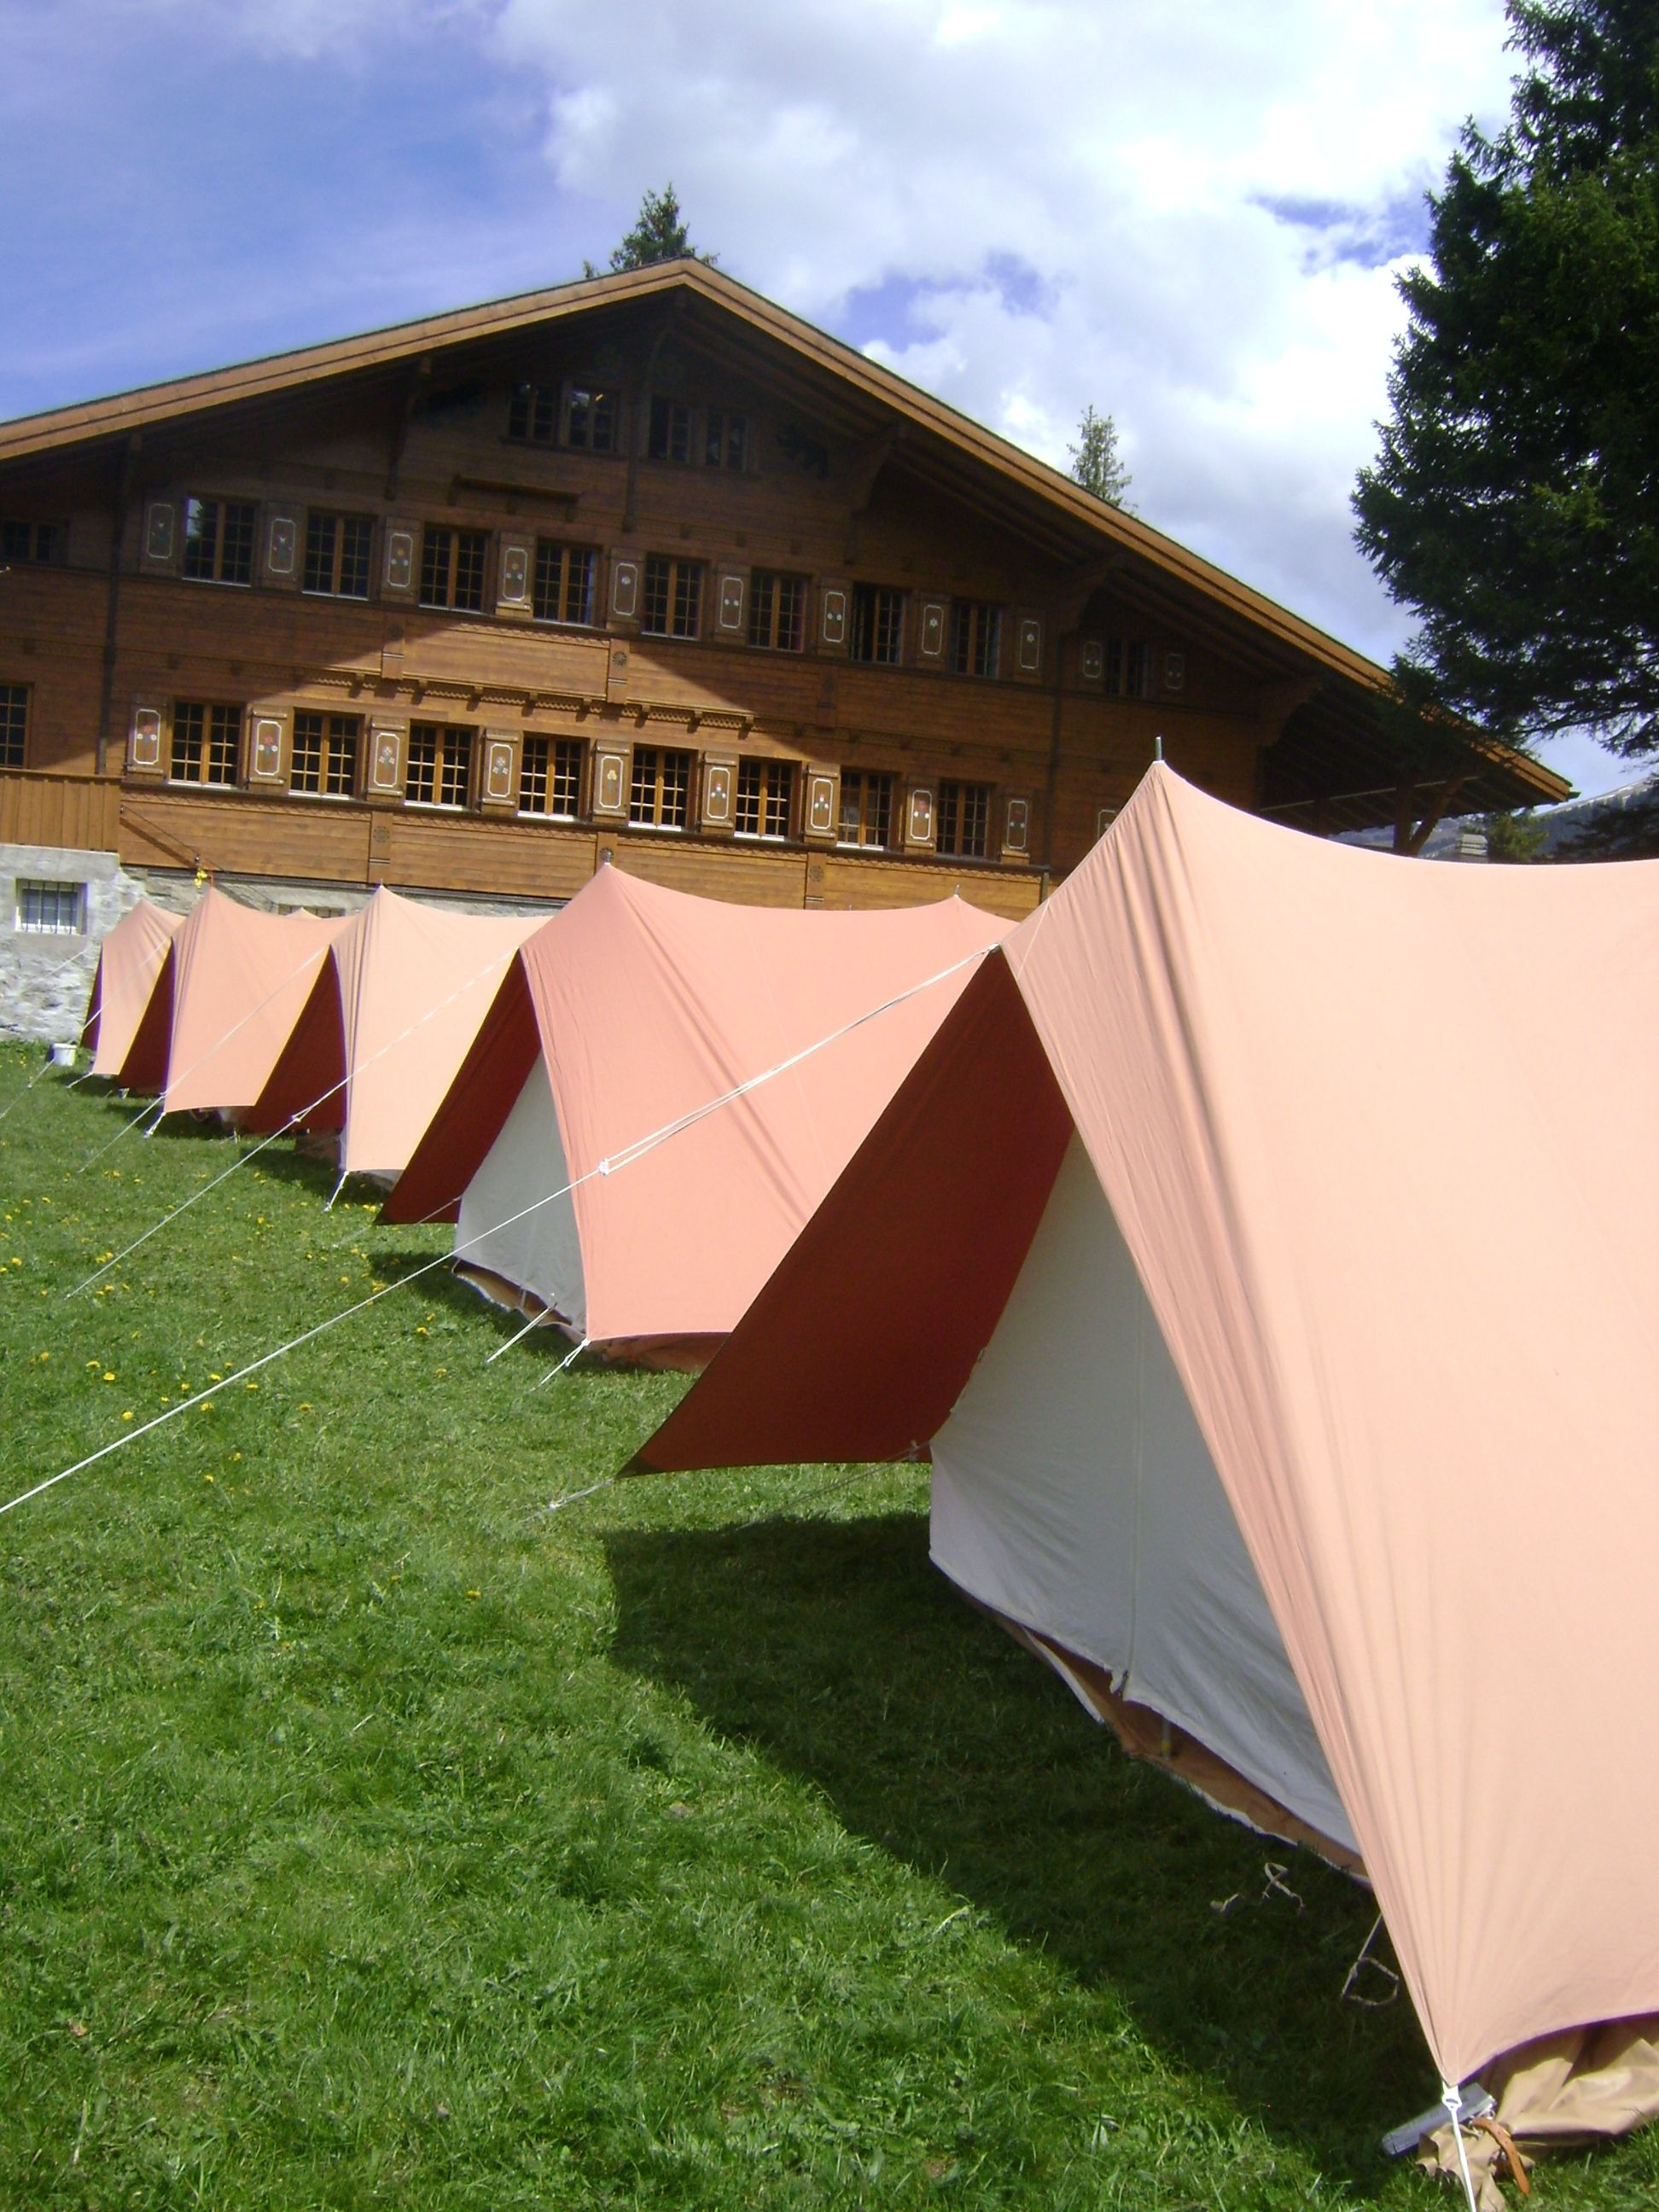 Tents pitched outside Main Chalet & Tents pitched outside Main Chalet | Our Chalet Grounds and ...